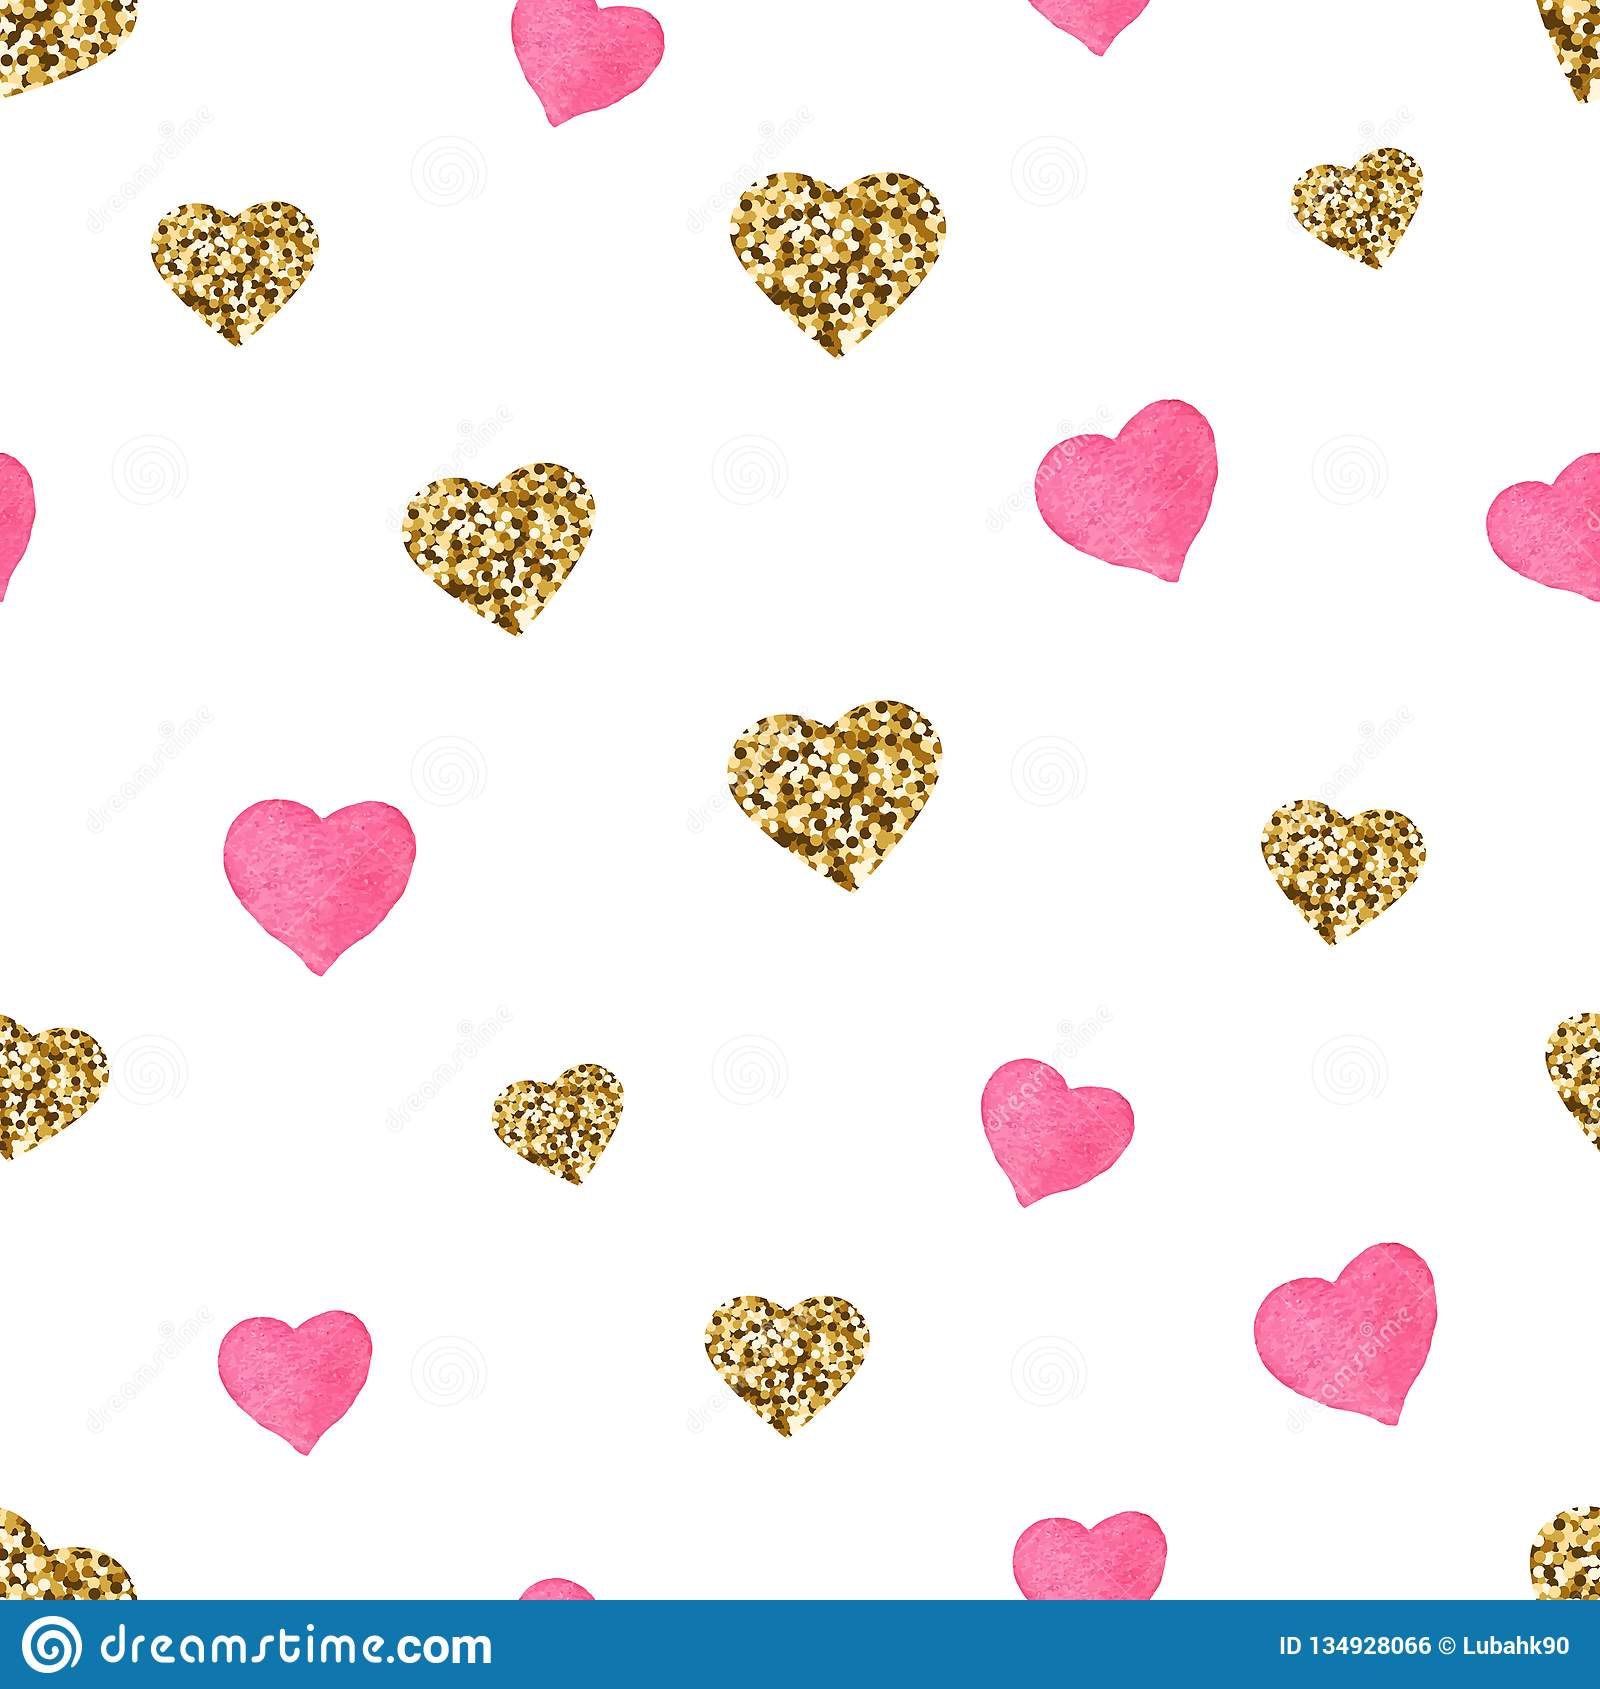 Pink And Gold Glitter Hearts Seamless Pattern Cute Valentines Day Background Golden Hearts With Sparkles And Star Dust Stock Vector Illustration Of Hearts Doodle 134928066